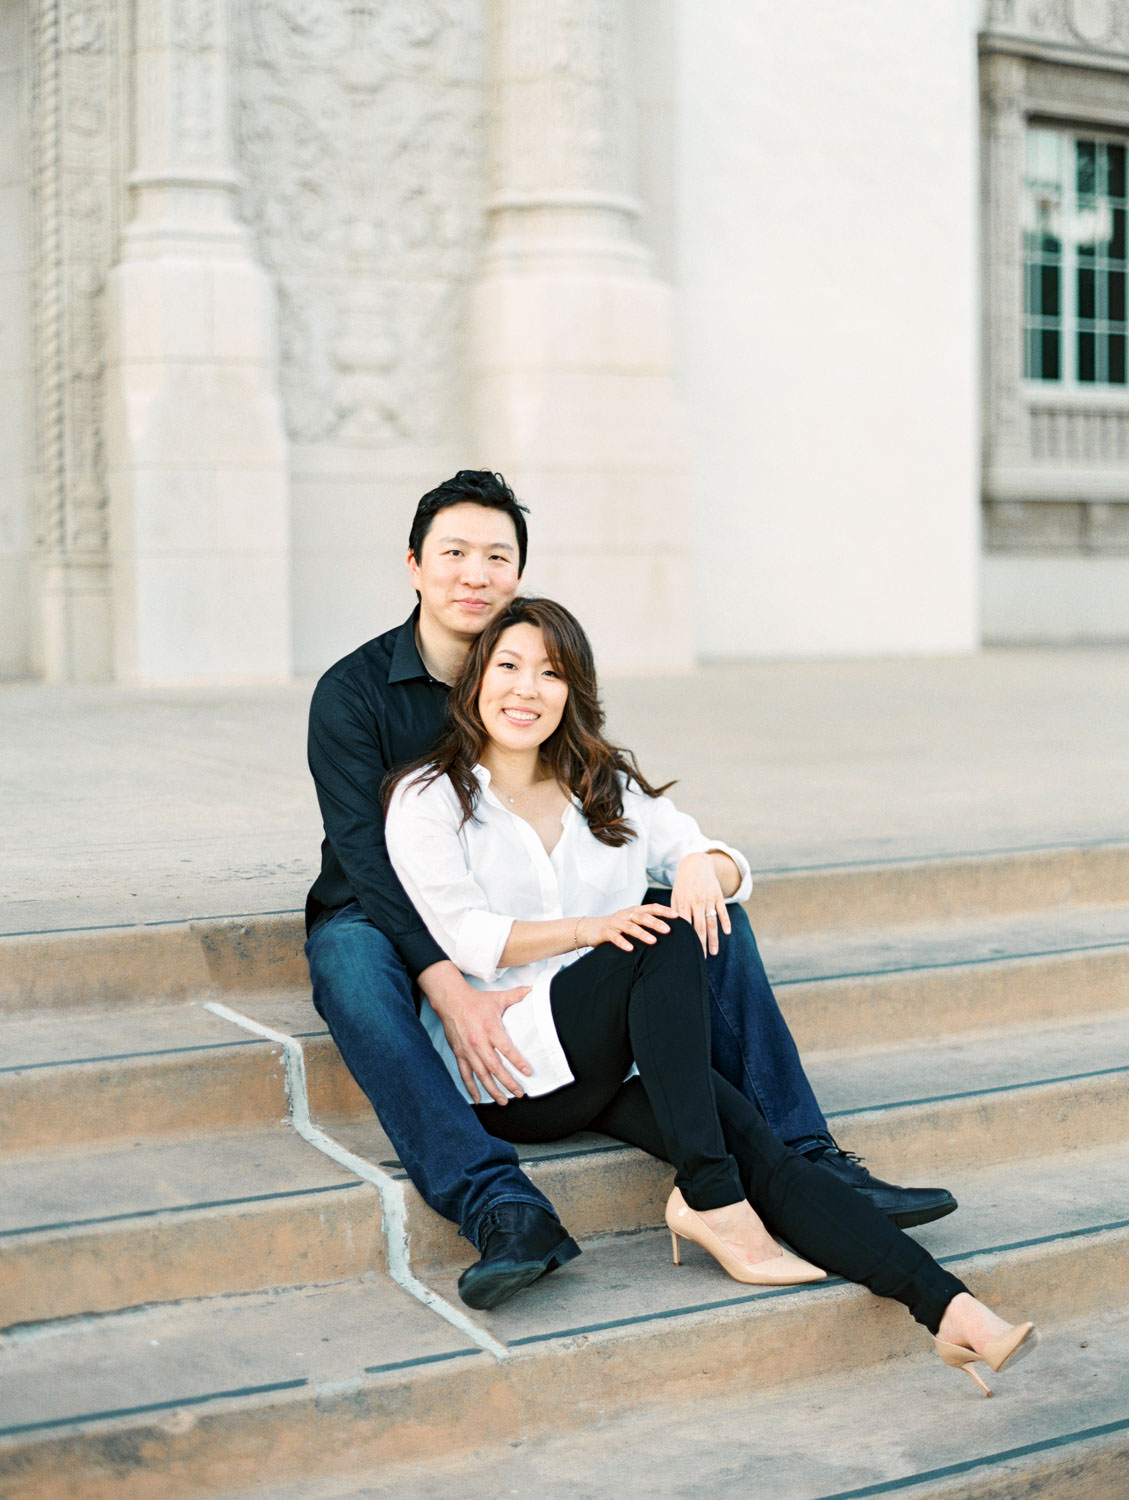 Engagement photos with bride in black jeans and white button down and groom in charcoal button down and dark jeans, film photographer Cavin Elizabeth in San Diego